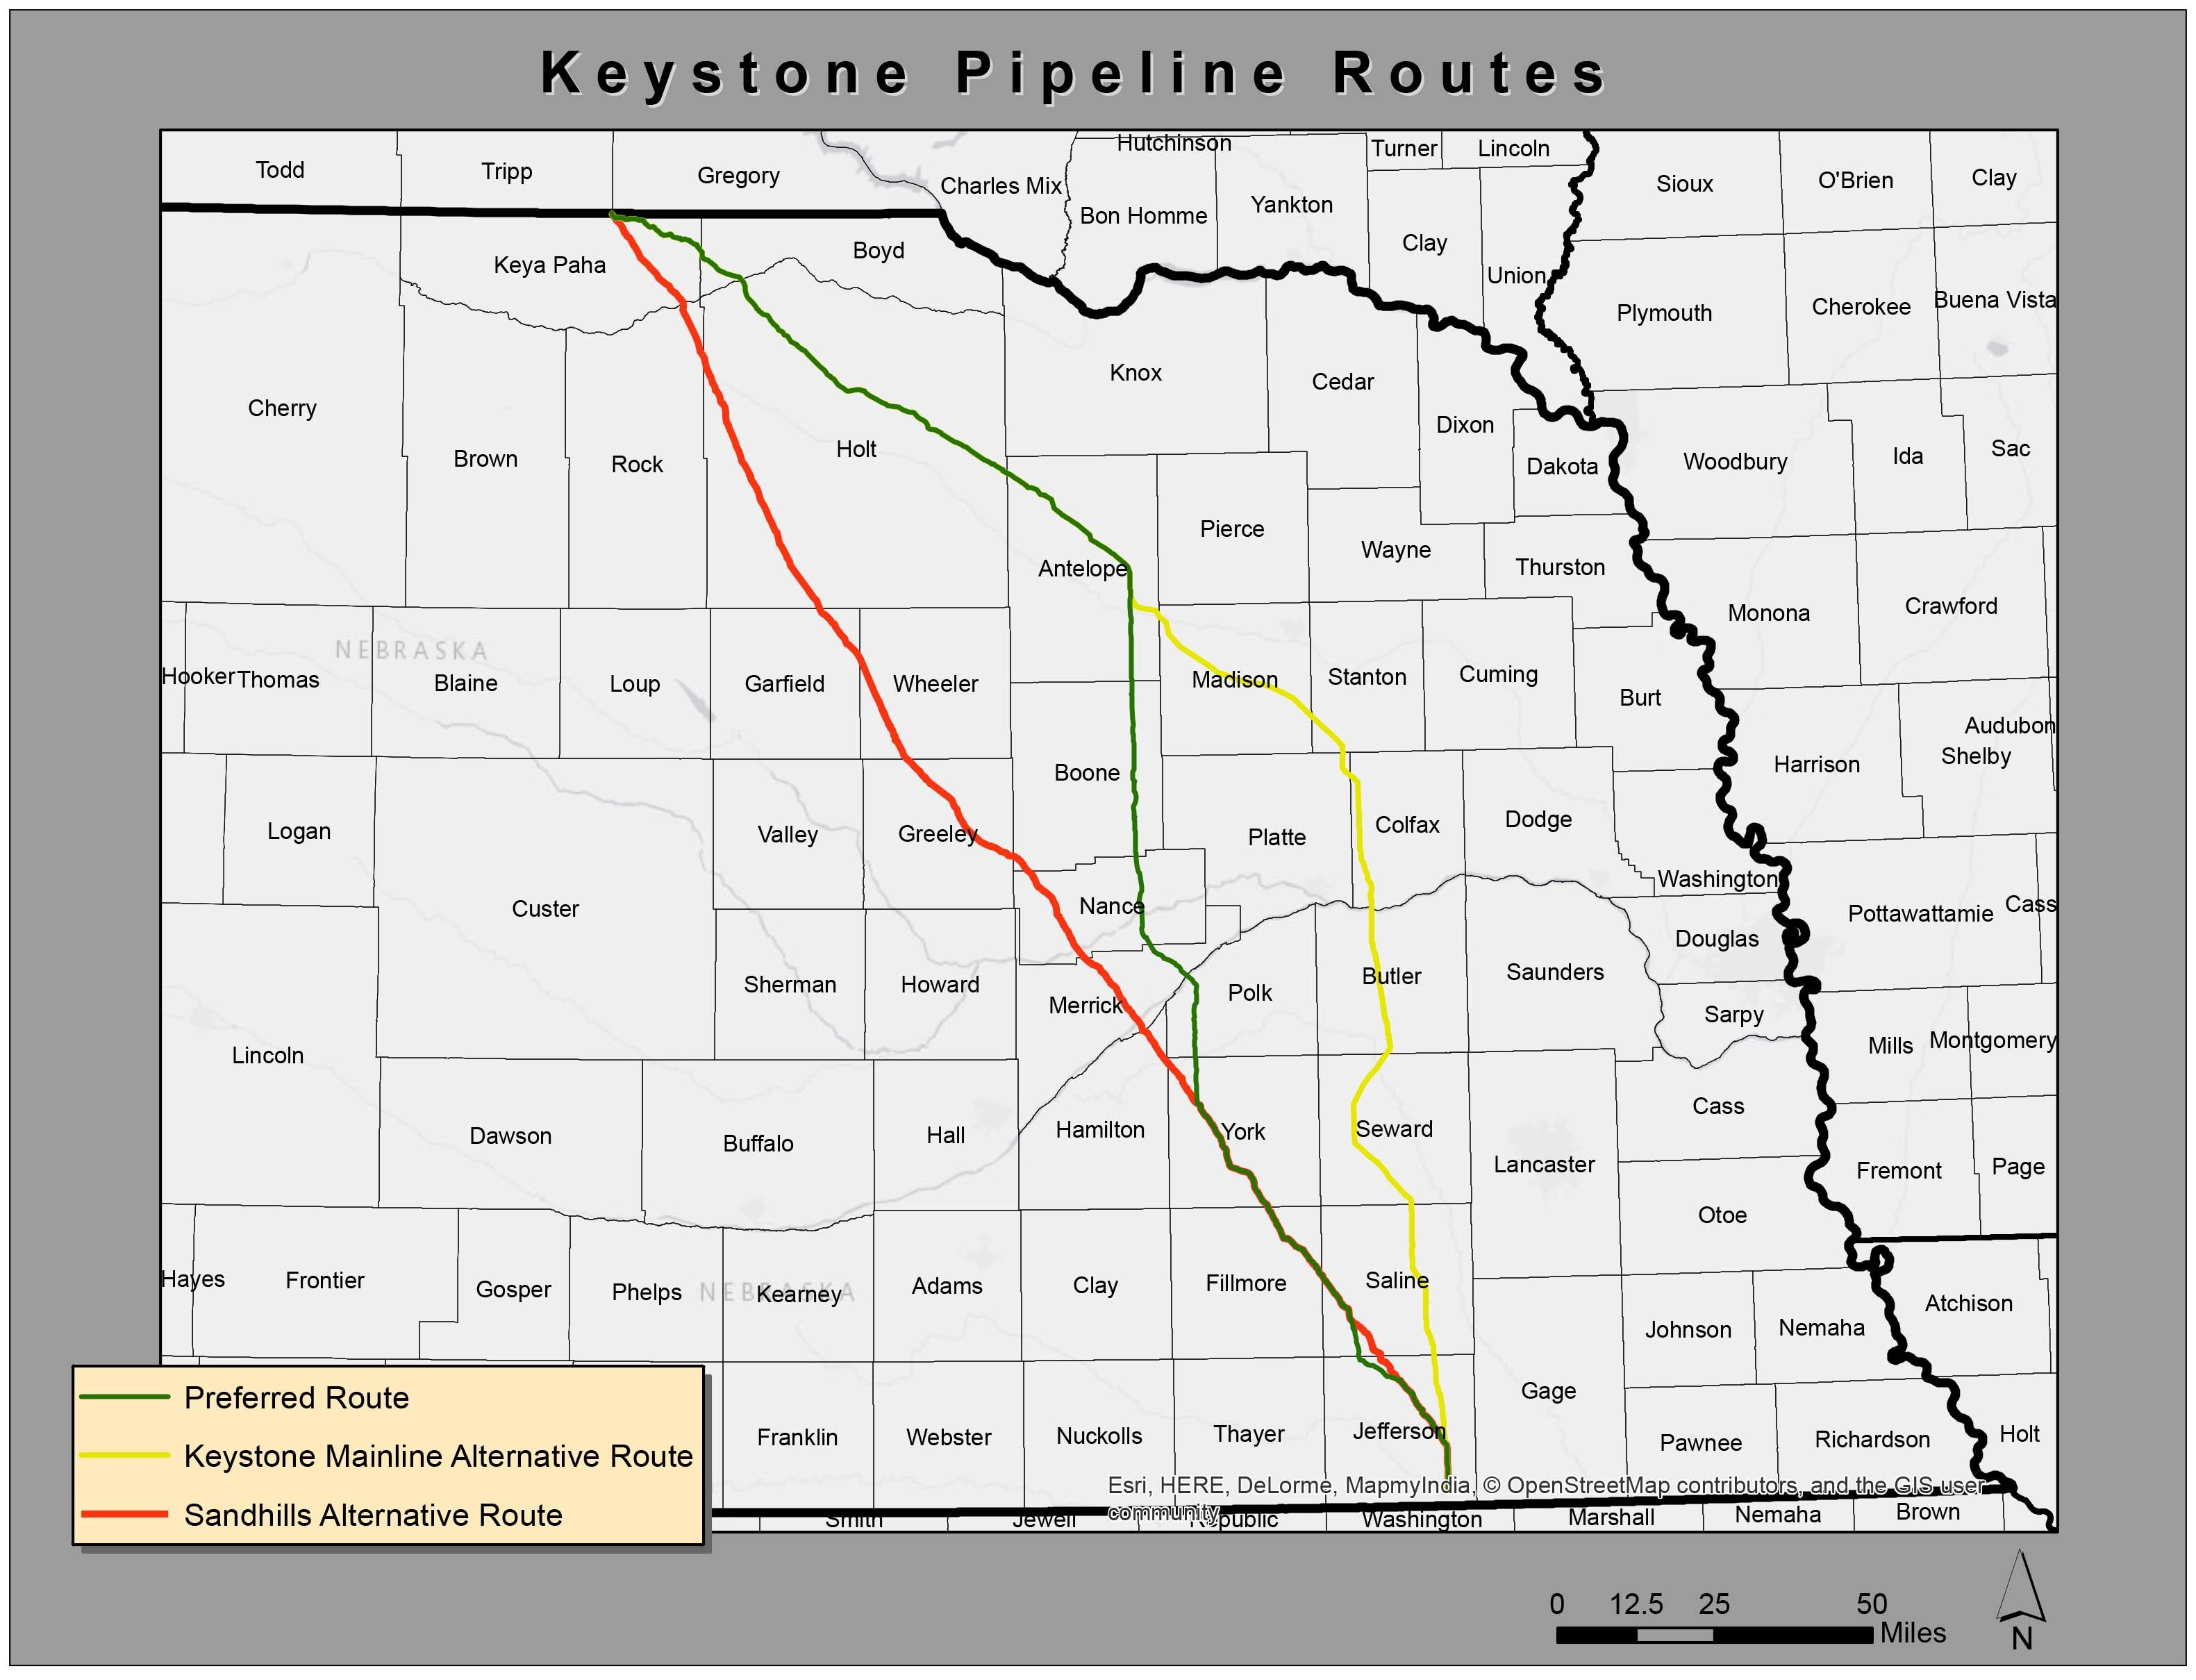 Oil pipeline protesters gather ahead of Nebraska's decision